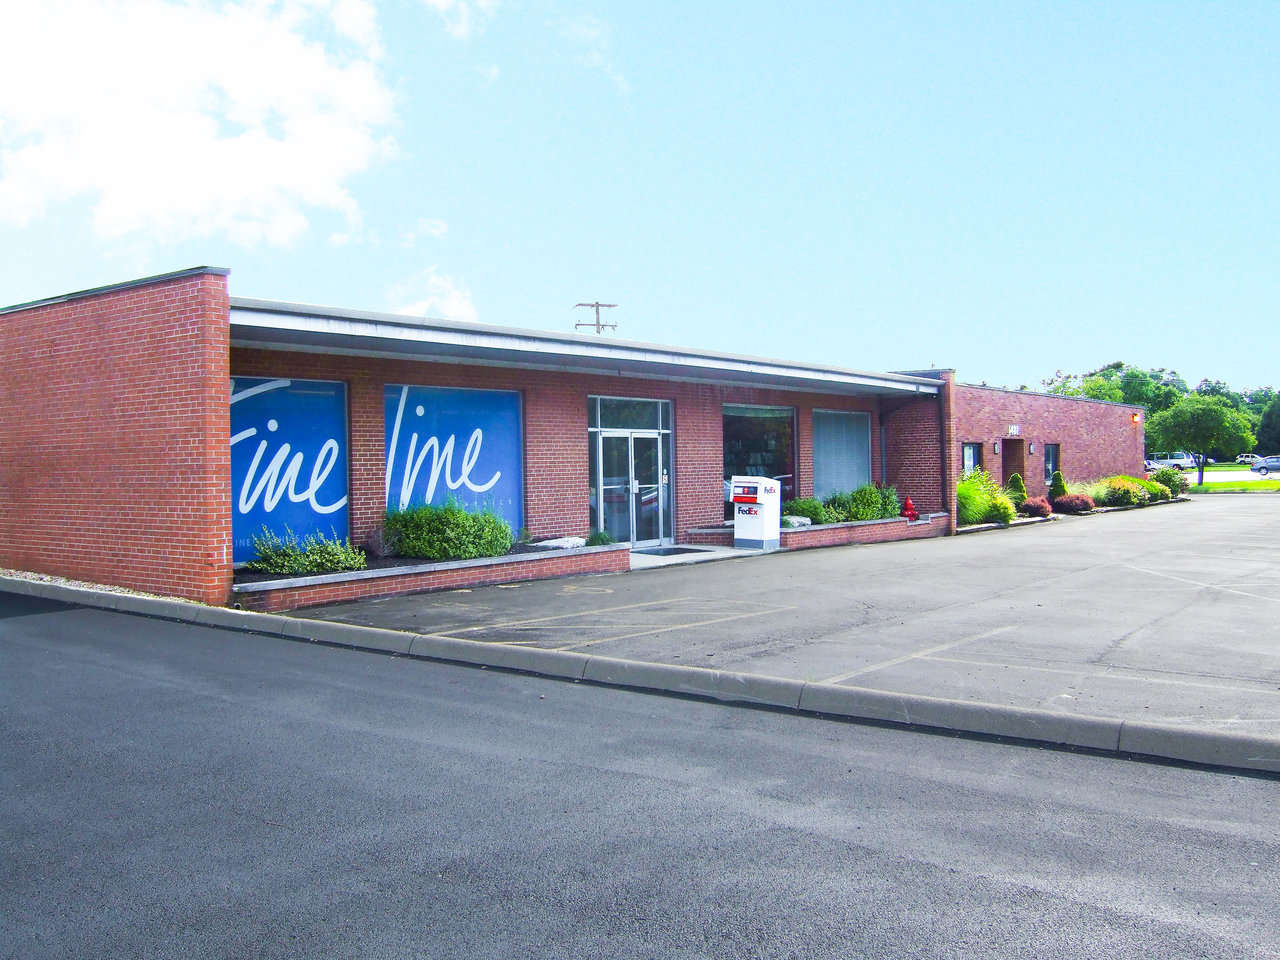 1481 W Goodale Blvd, Grandview Heights , OH, 43212